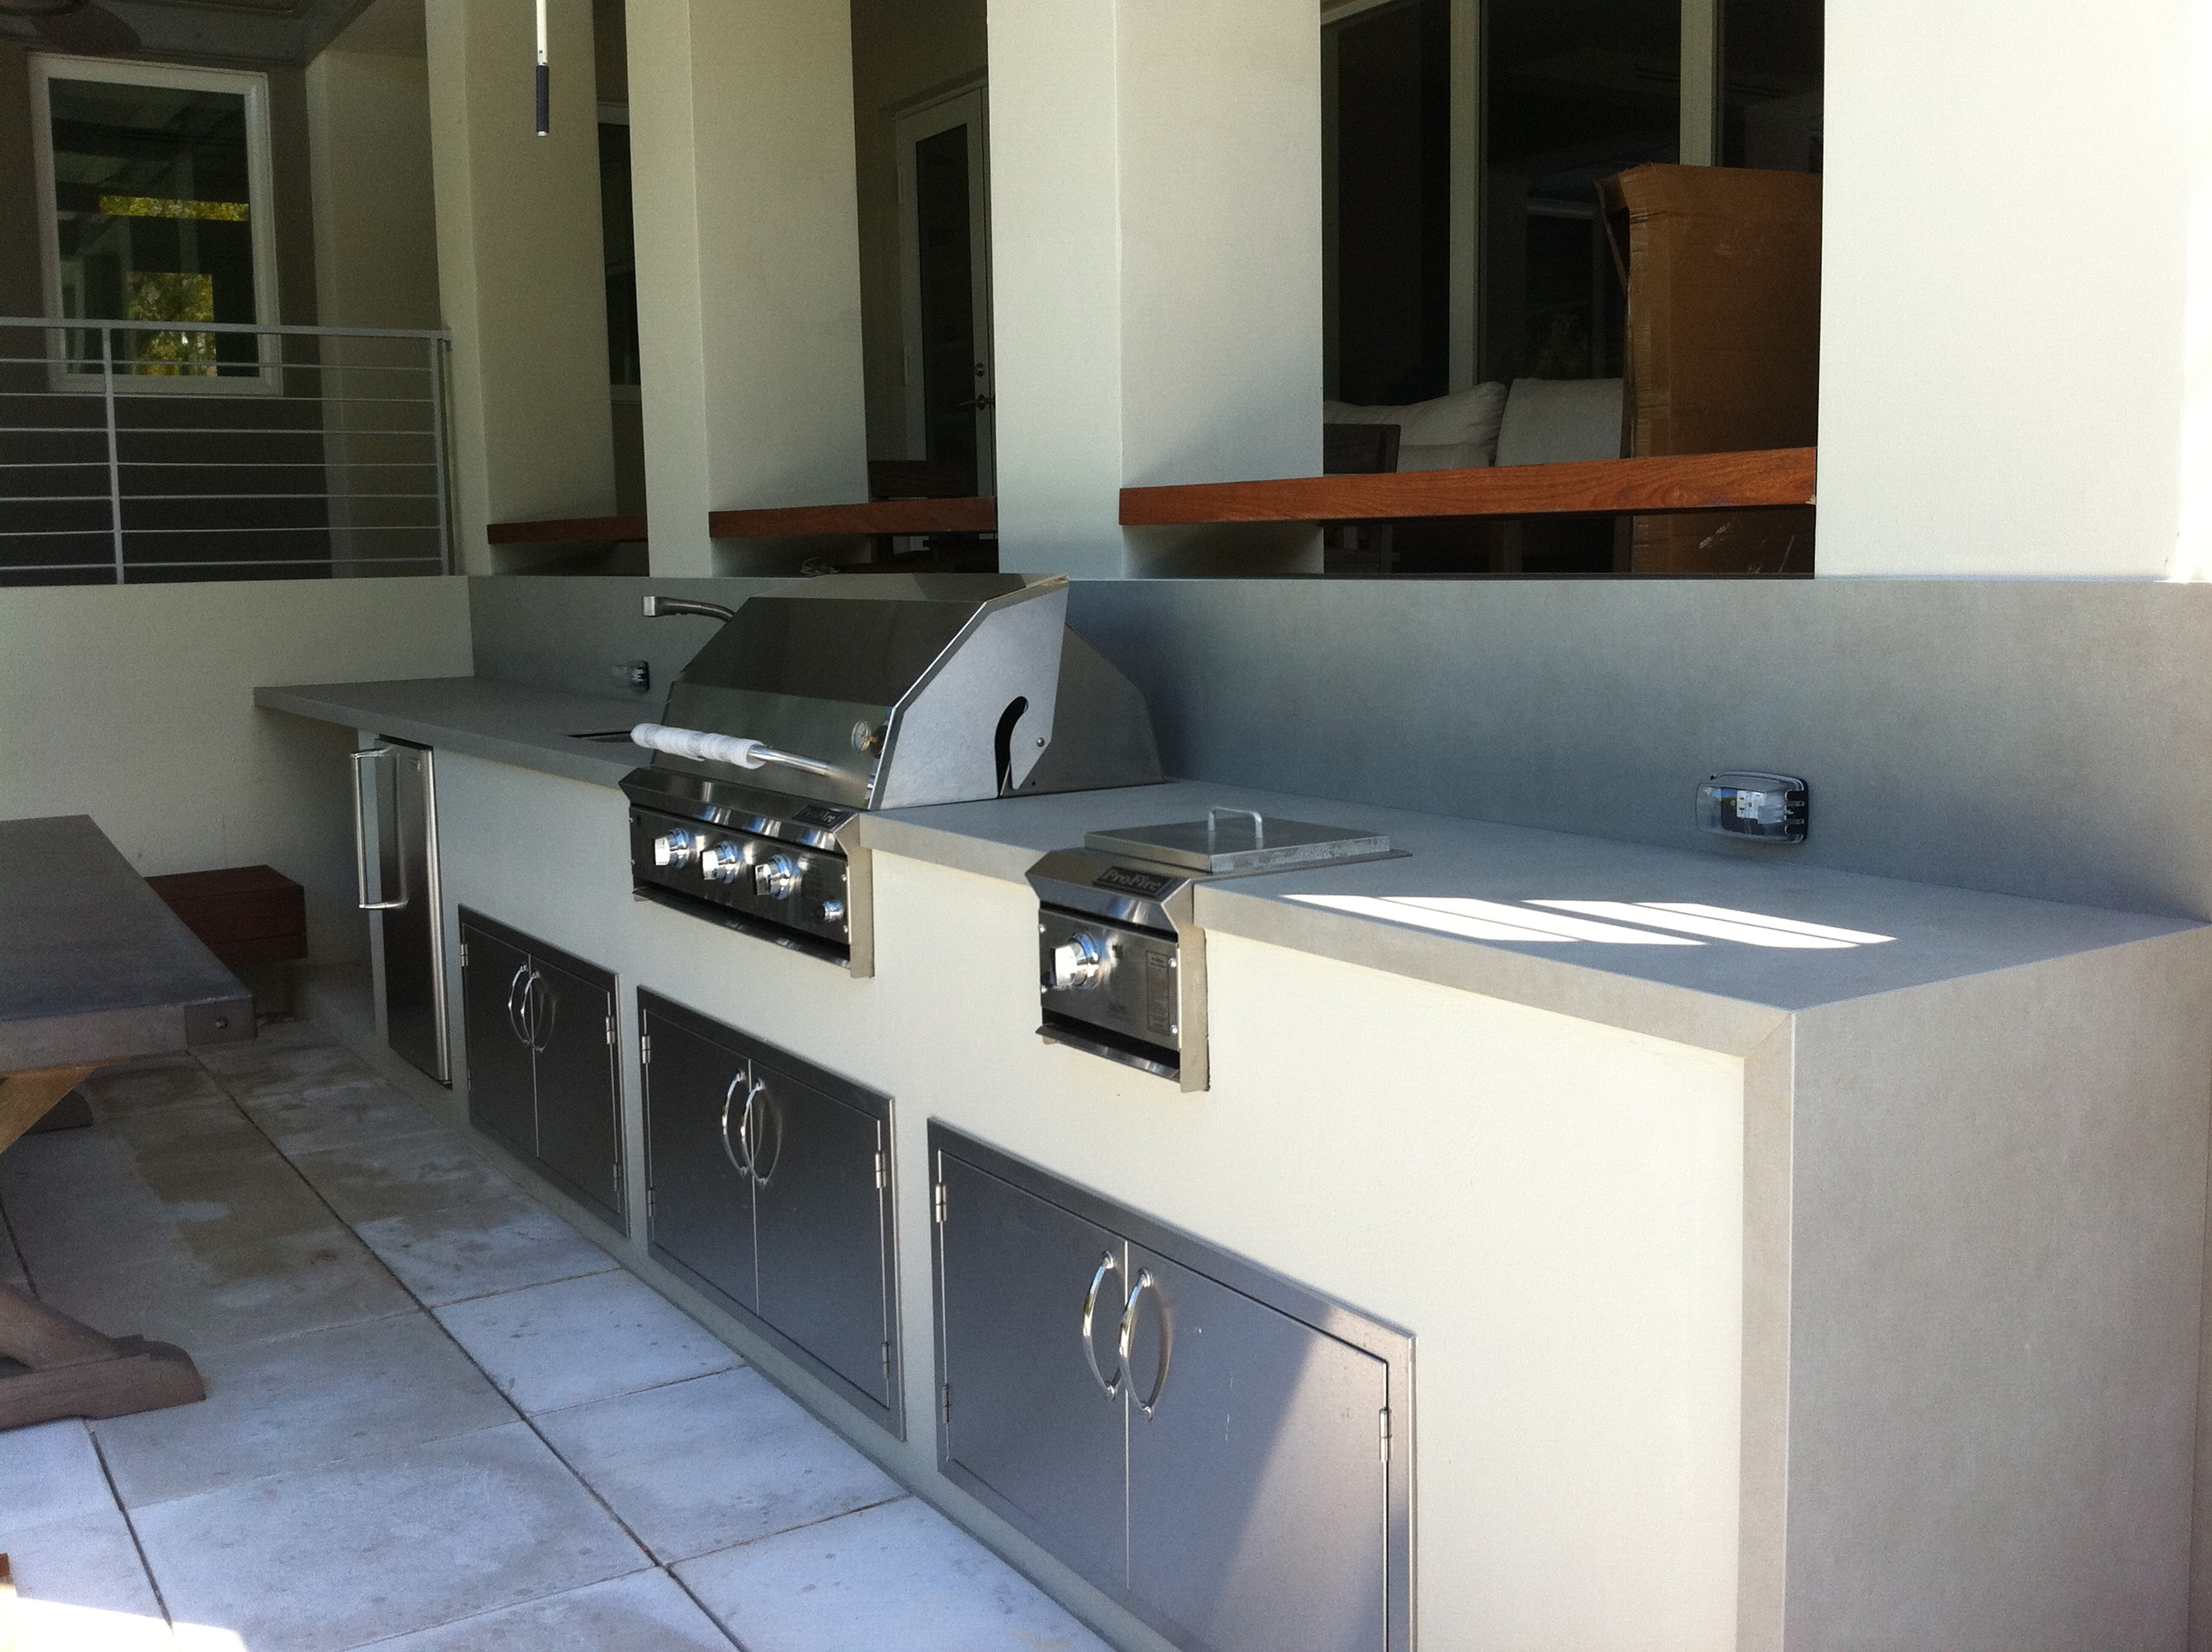 Neolith used in outside kitchen